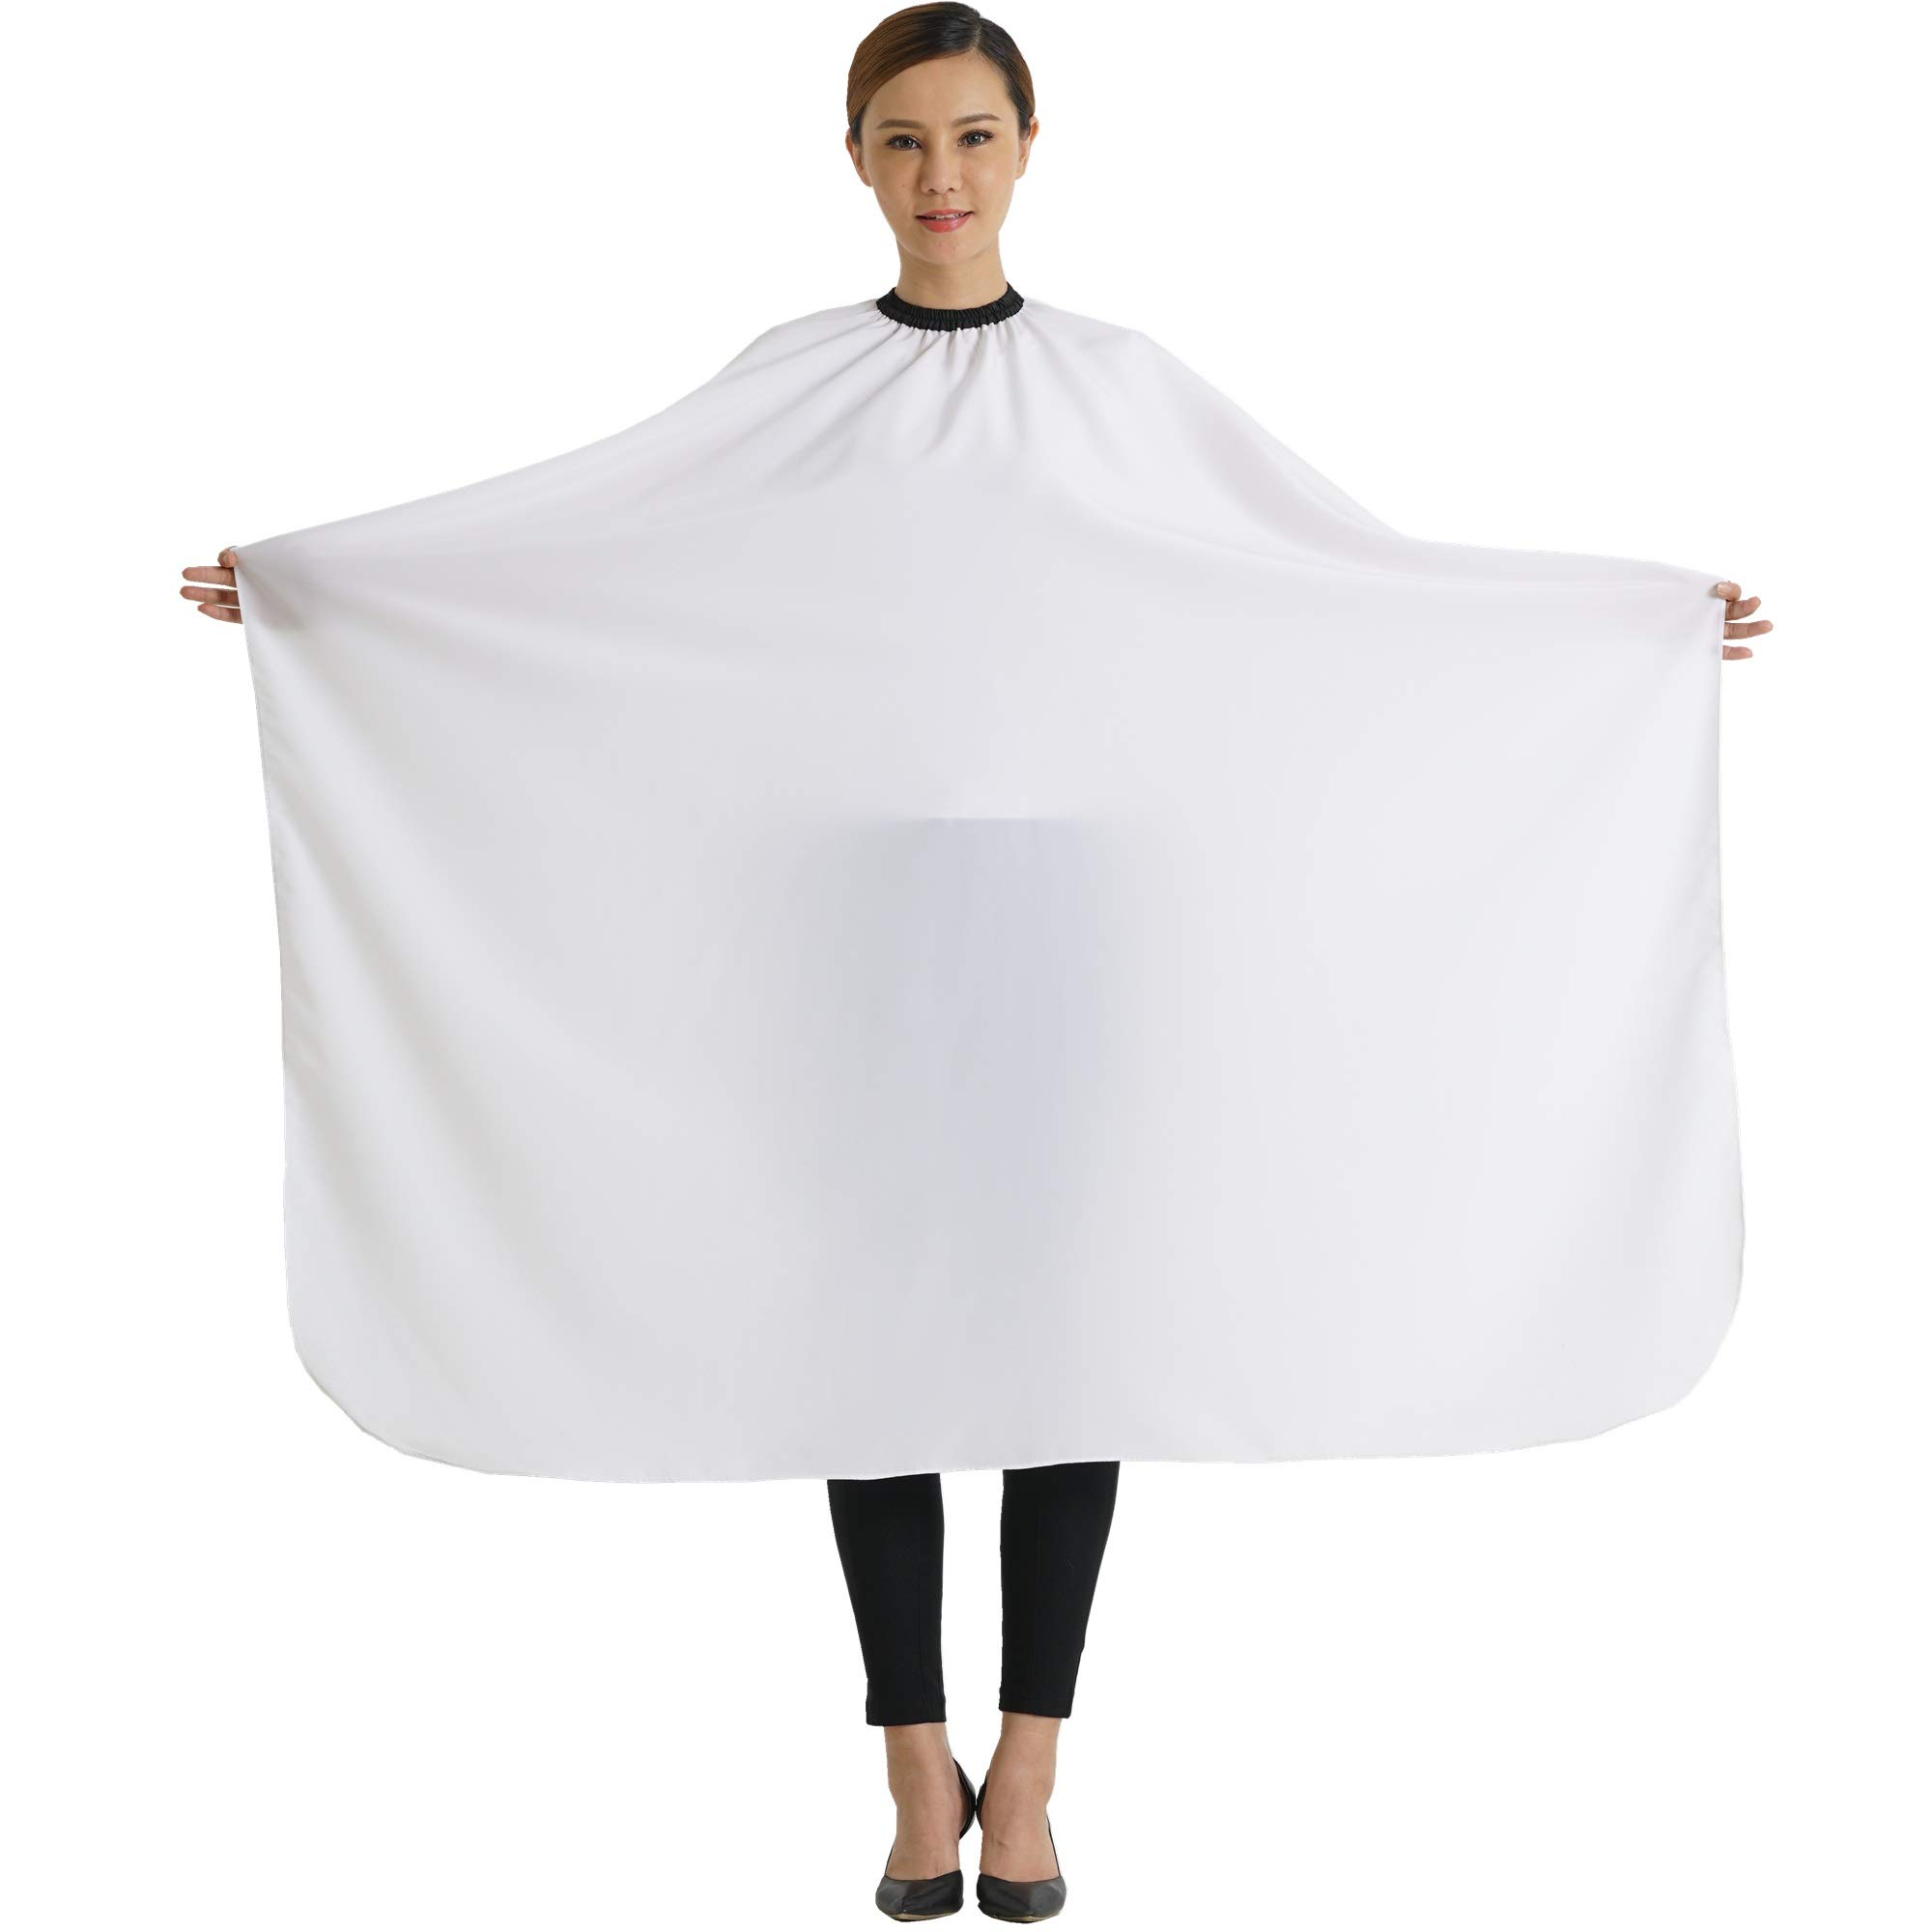 "SMARTHAIR Professional Salon Cape Polyester Haircut Apron Hair Cut Cape,54""x62"",White,C026005B by SMARTHAIR"